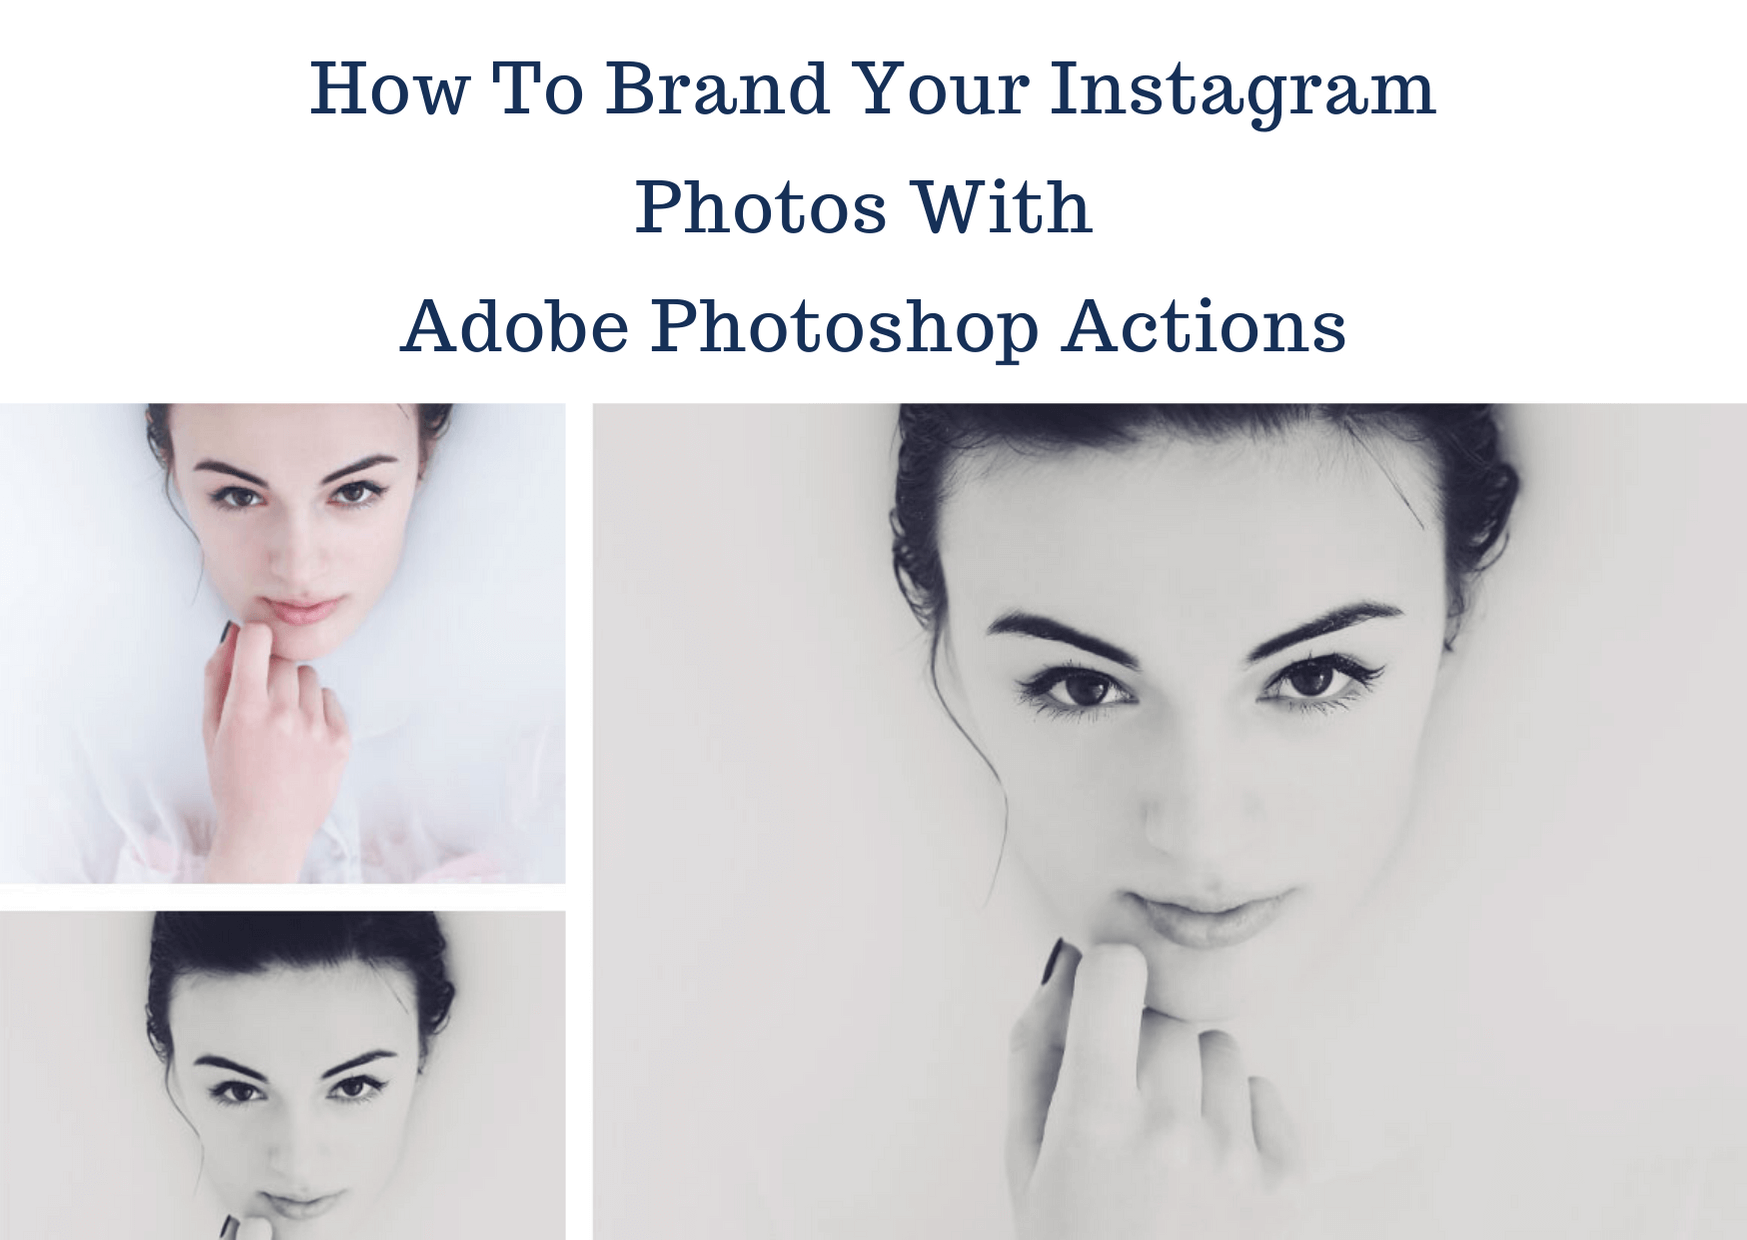 How To Brand Your Instagram Photos With Adobe Photoshop Actions